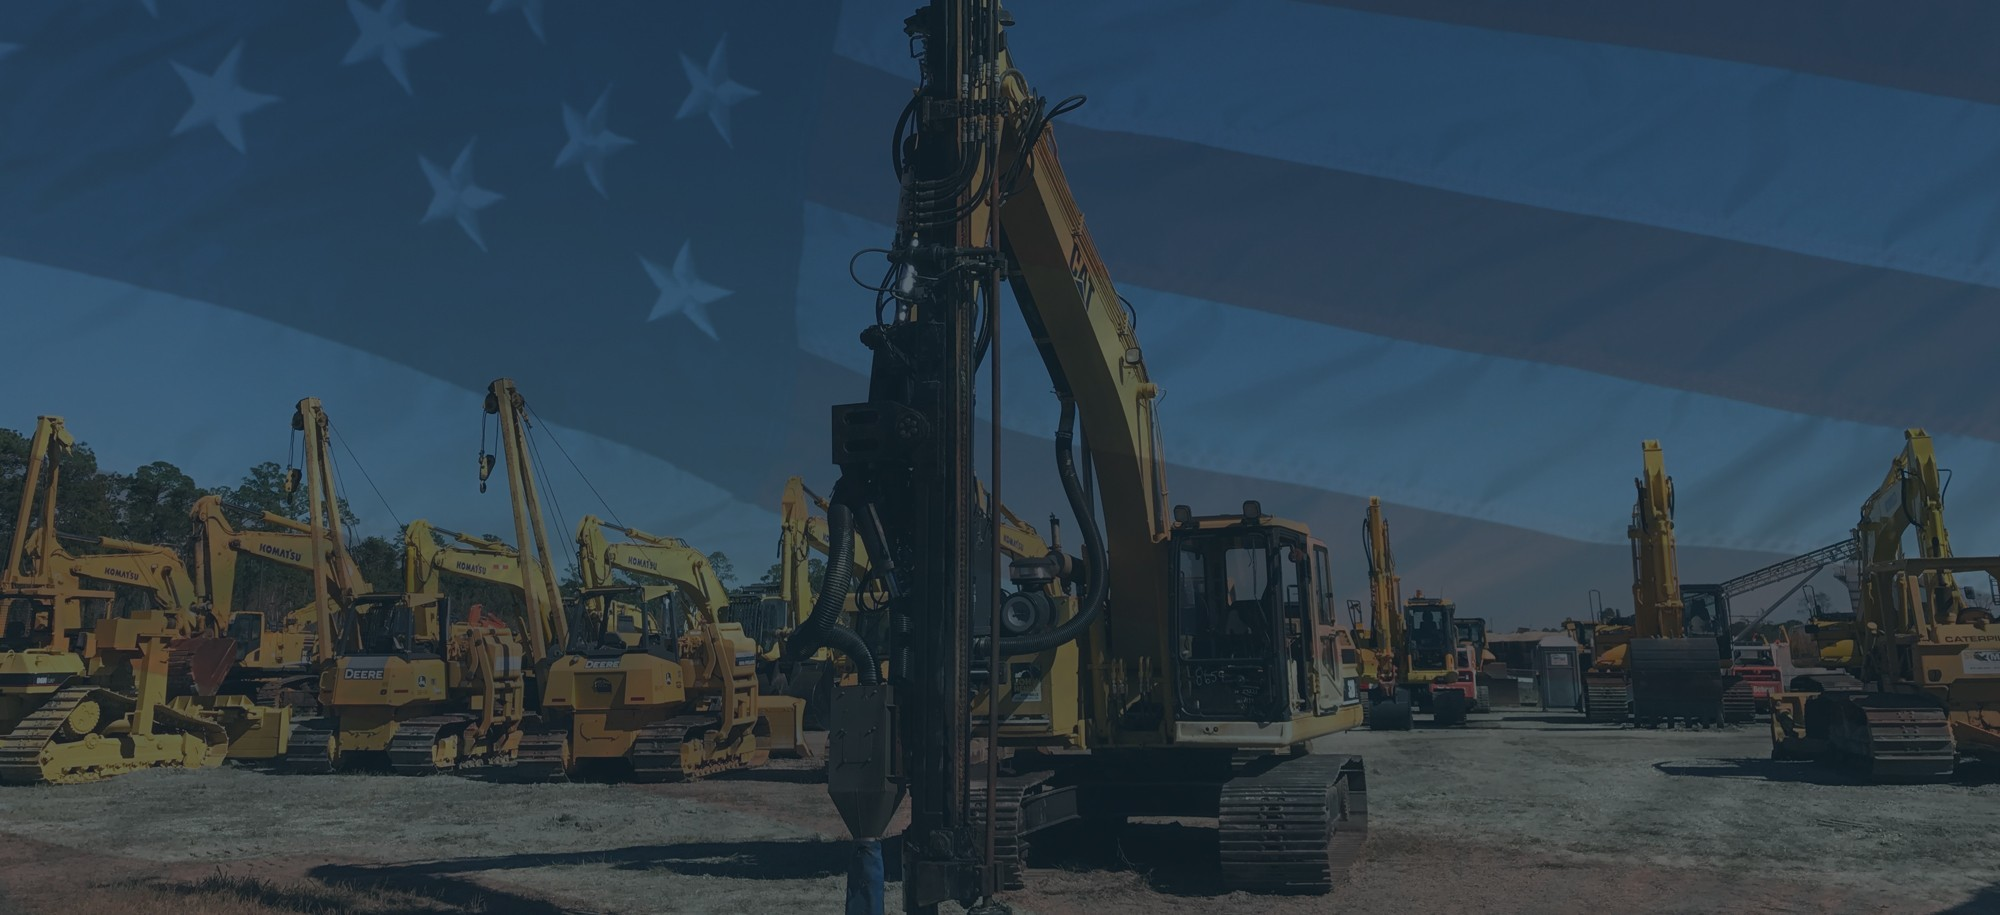 Heavy machinery for Sale | Used construction equipment auctions online